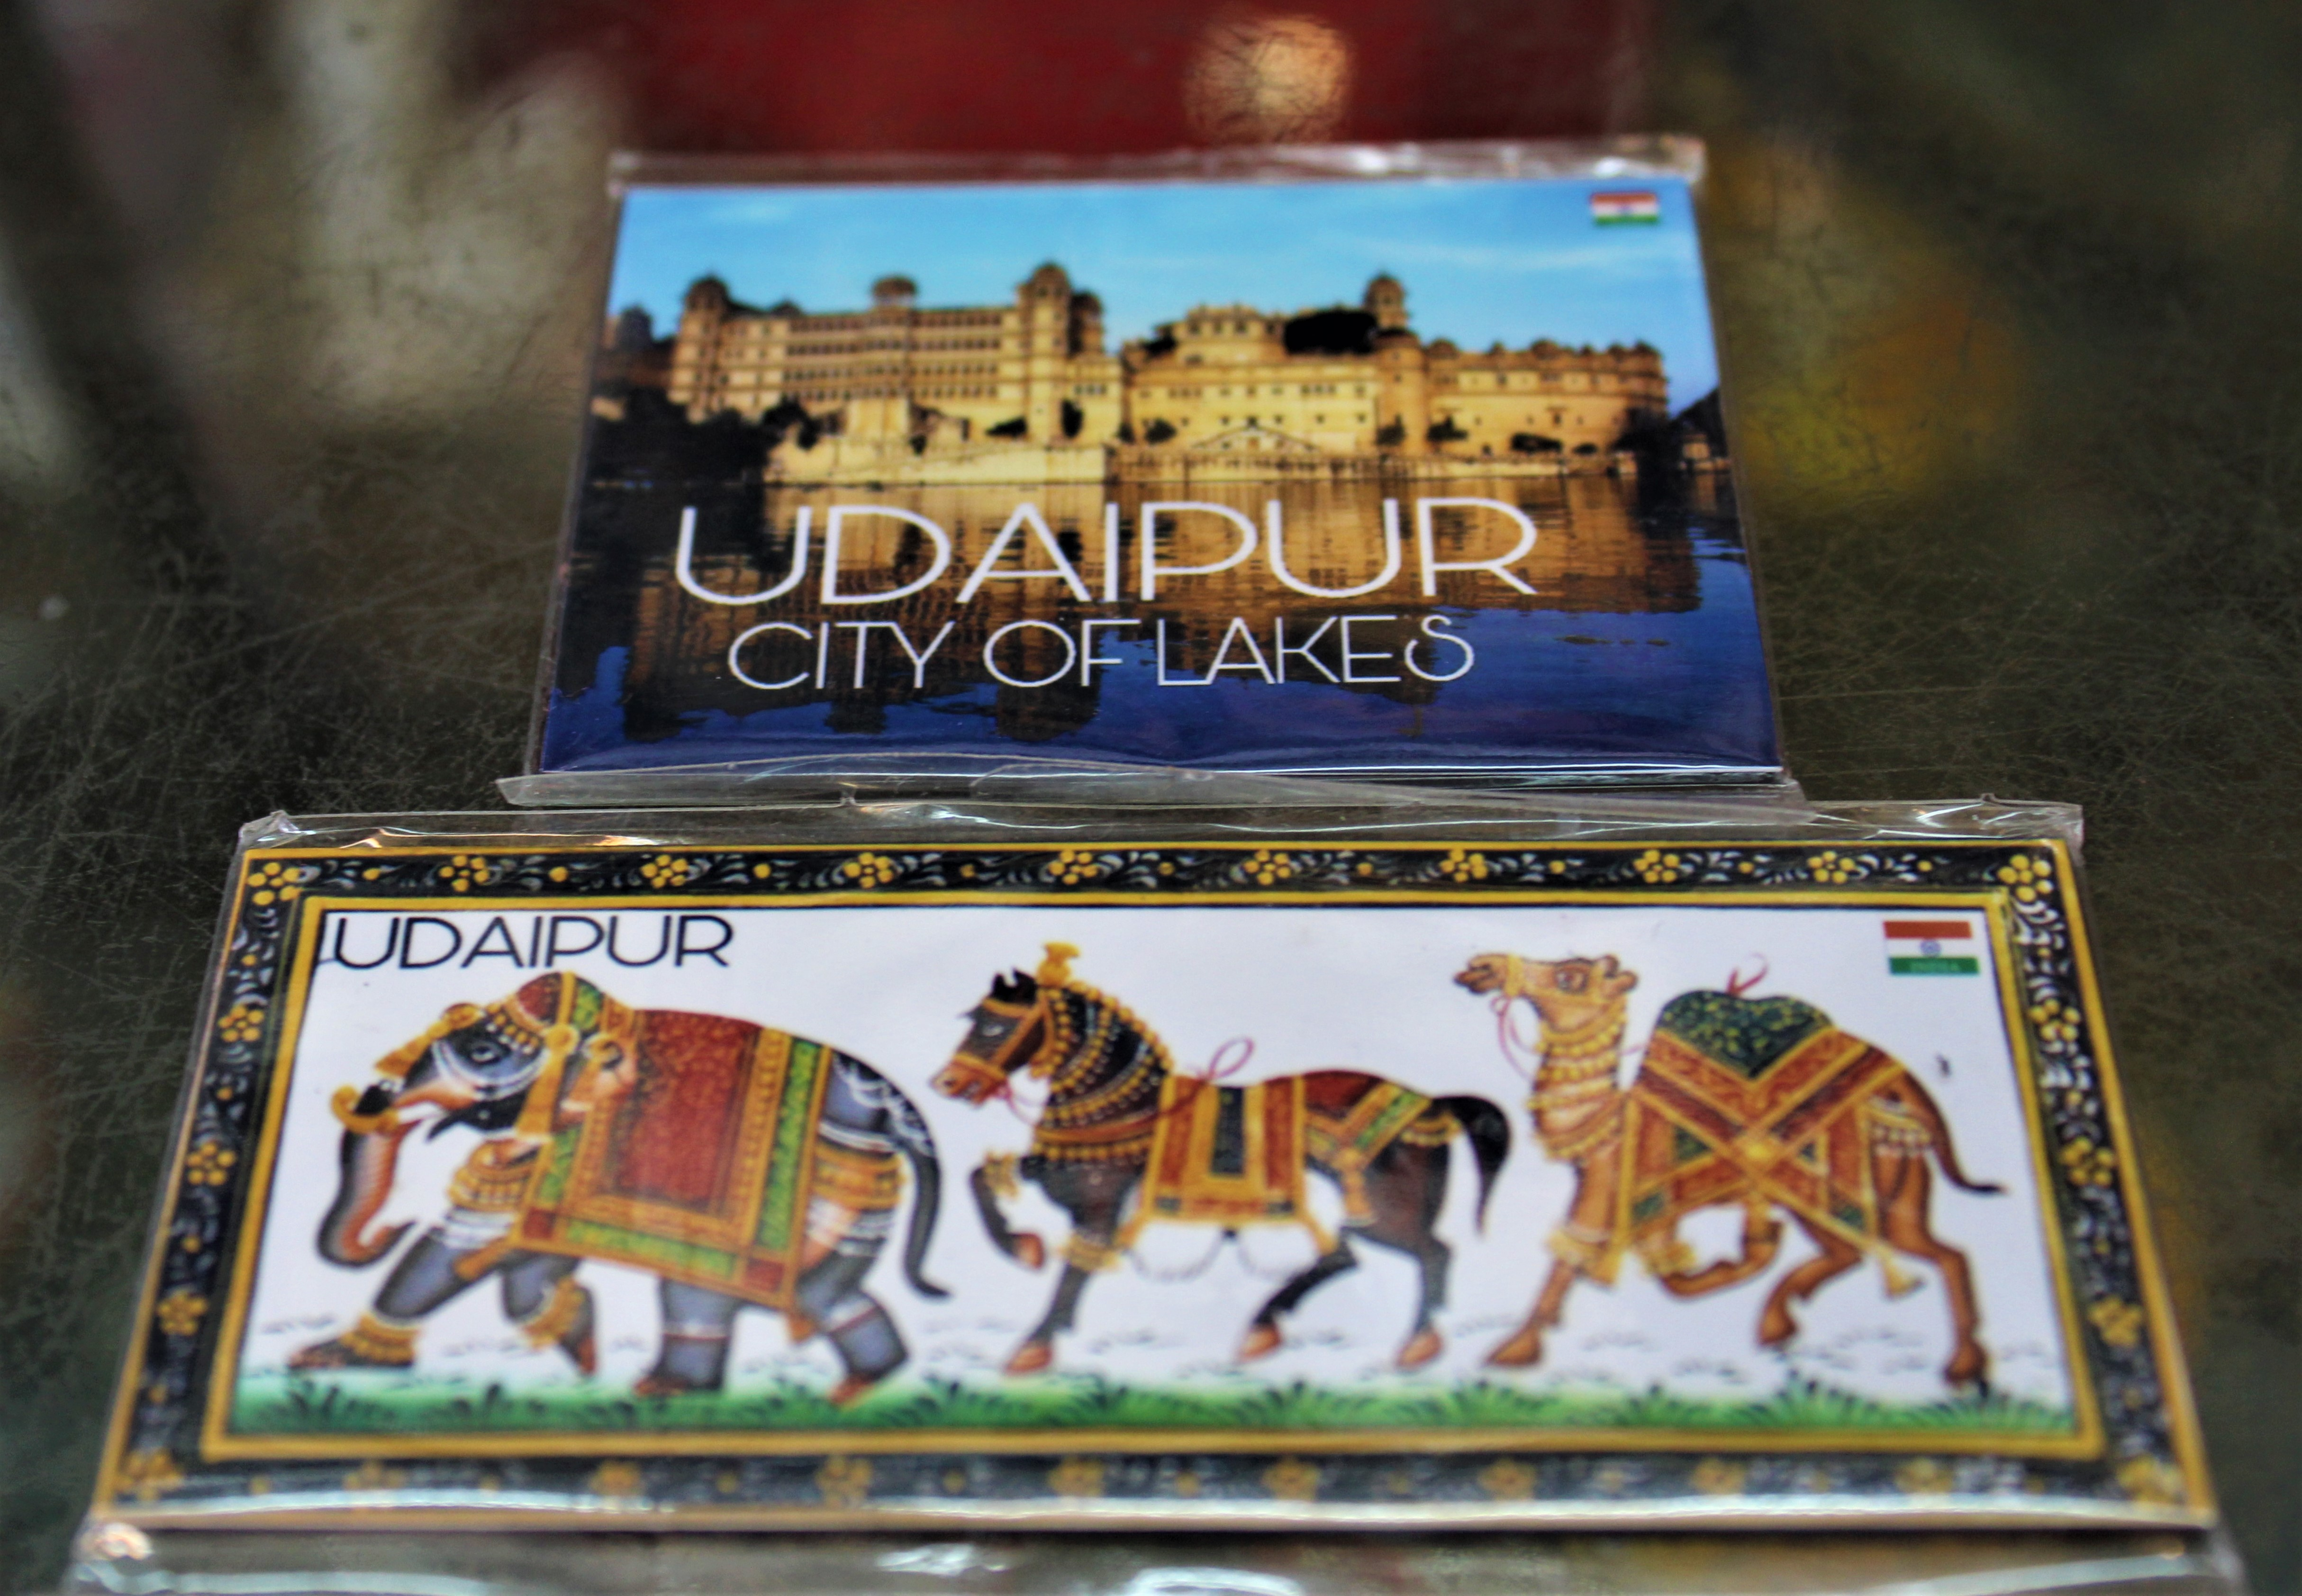 What all to take away from Udaipur with just ₹500?